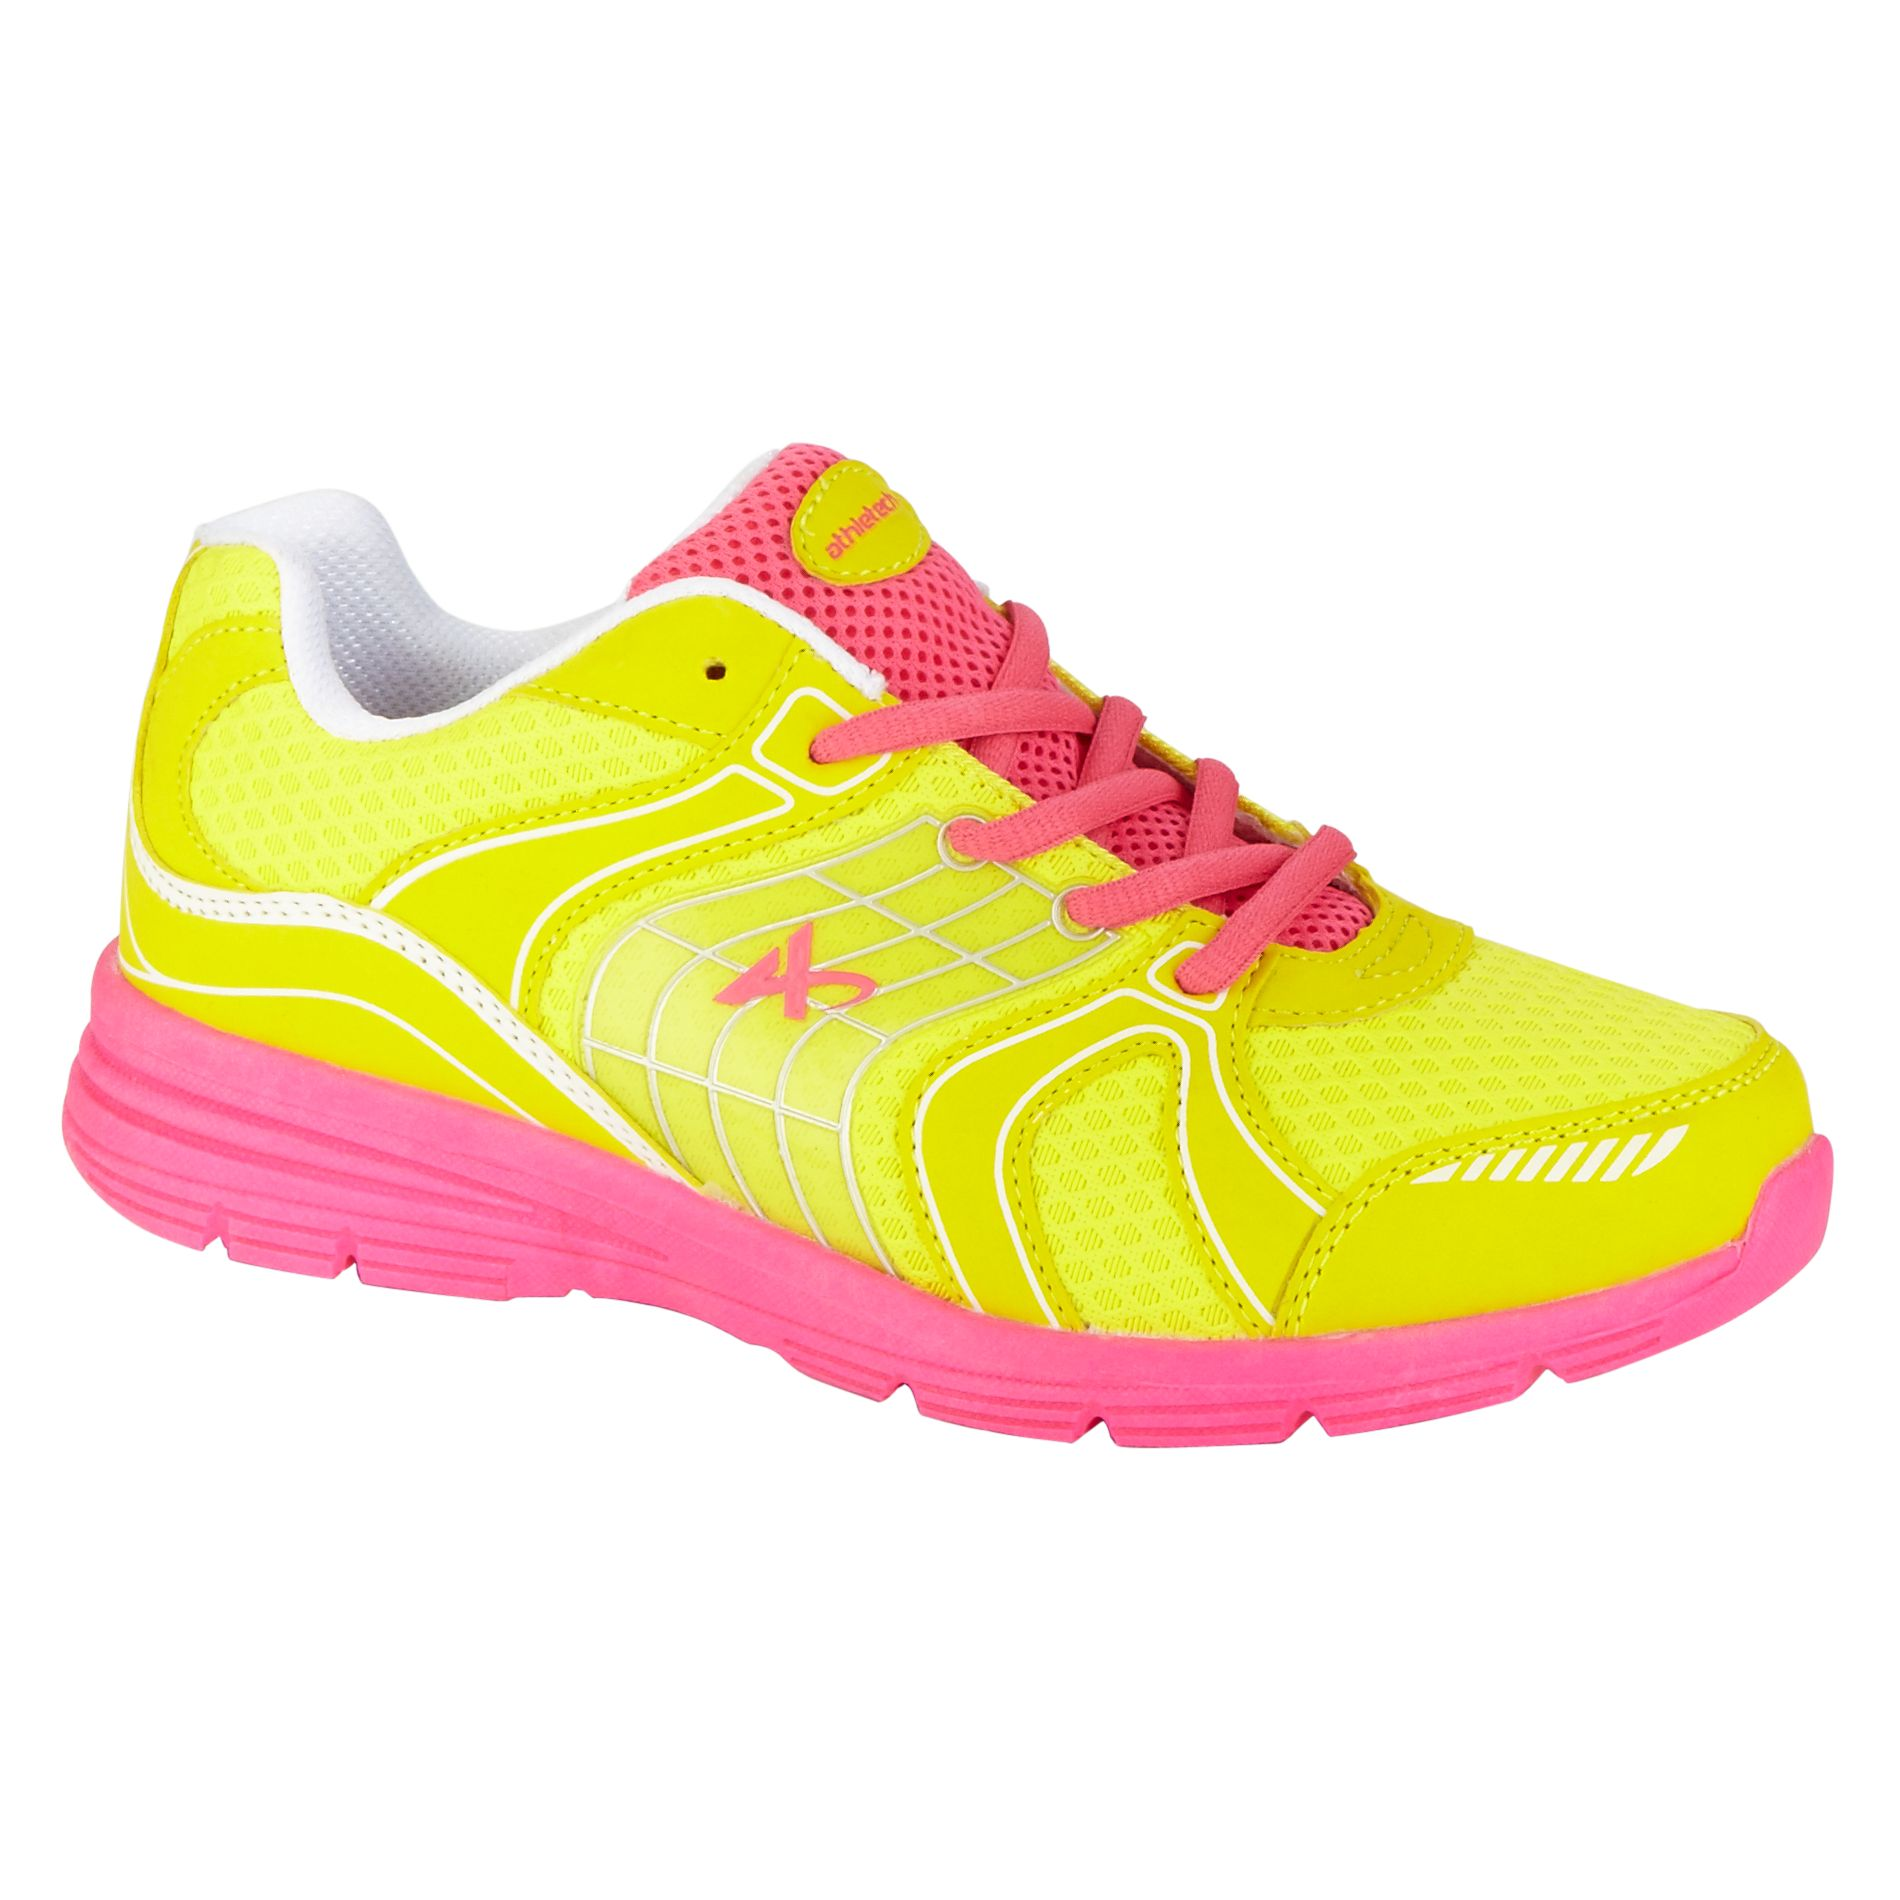 Women's Ath-L Willow Fashion Sneaker - Yellow